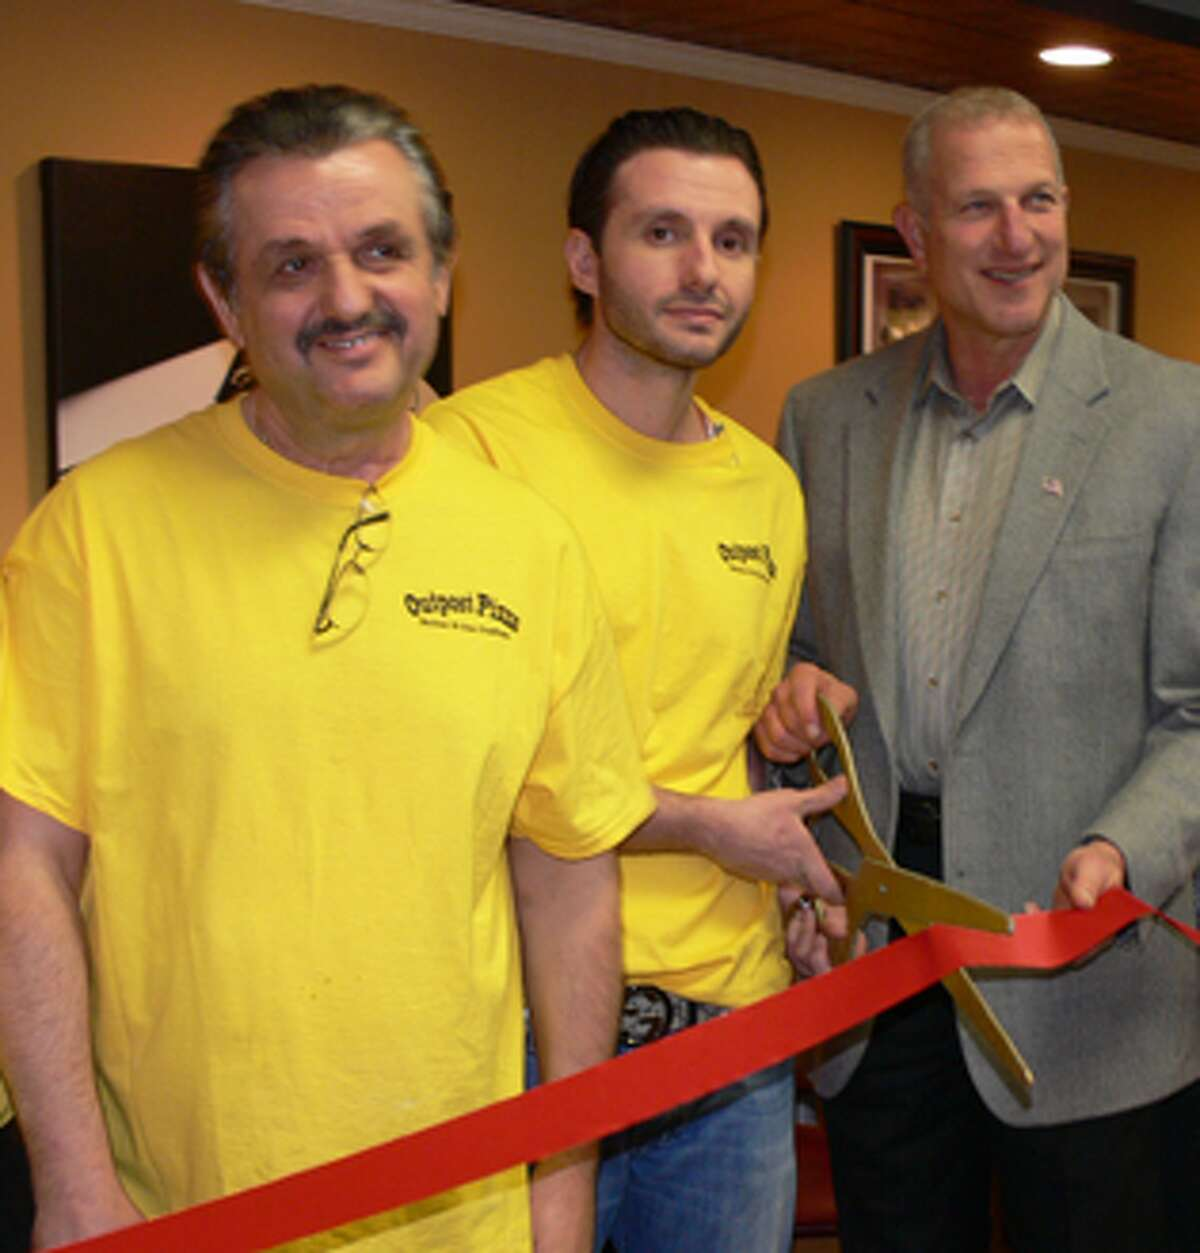 From left, Tom Dedovic, Joe Dedovic and Mayor Mark Lauretti at the ribbon-cutting ceremony for the new pizzeria.